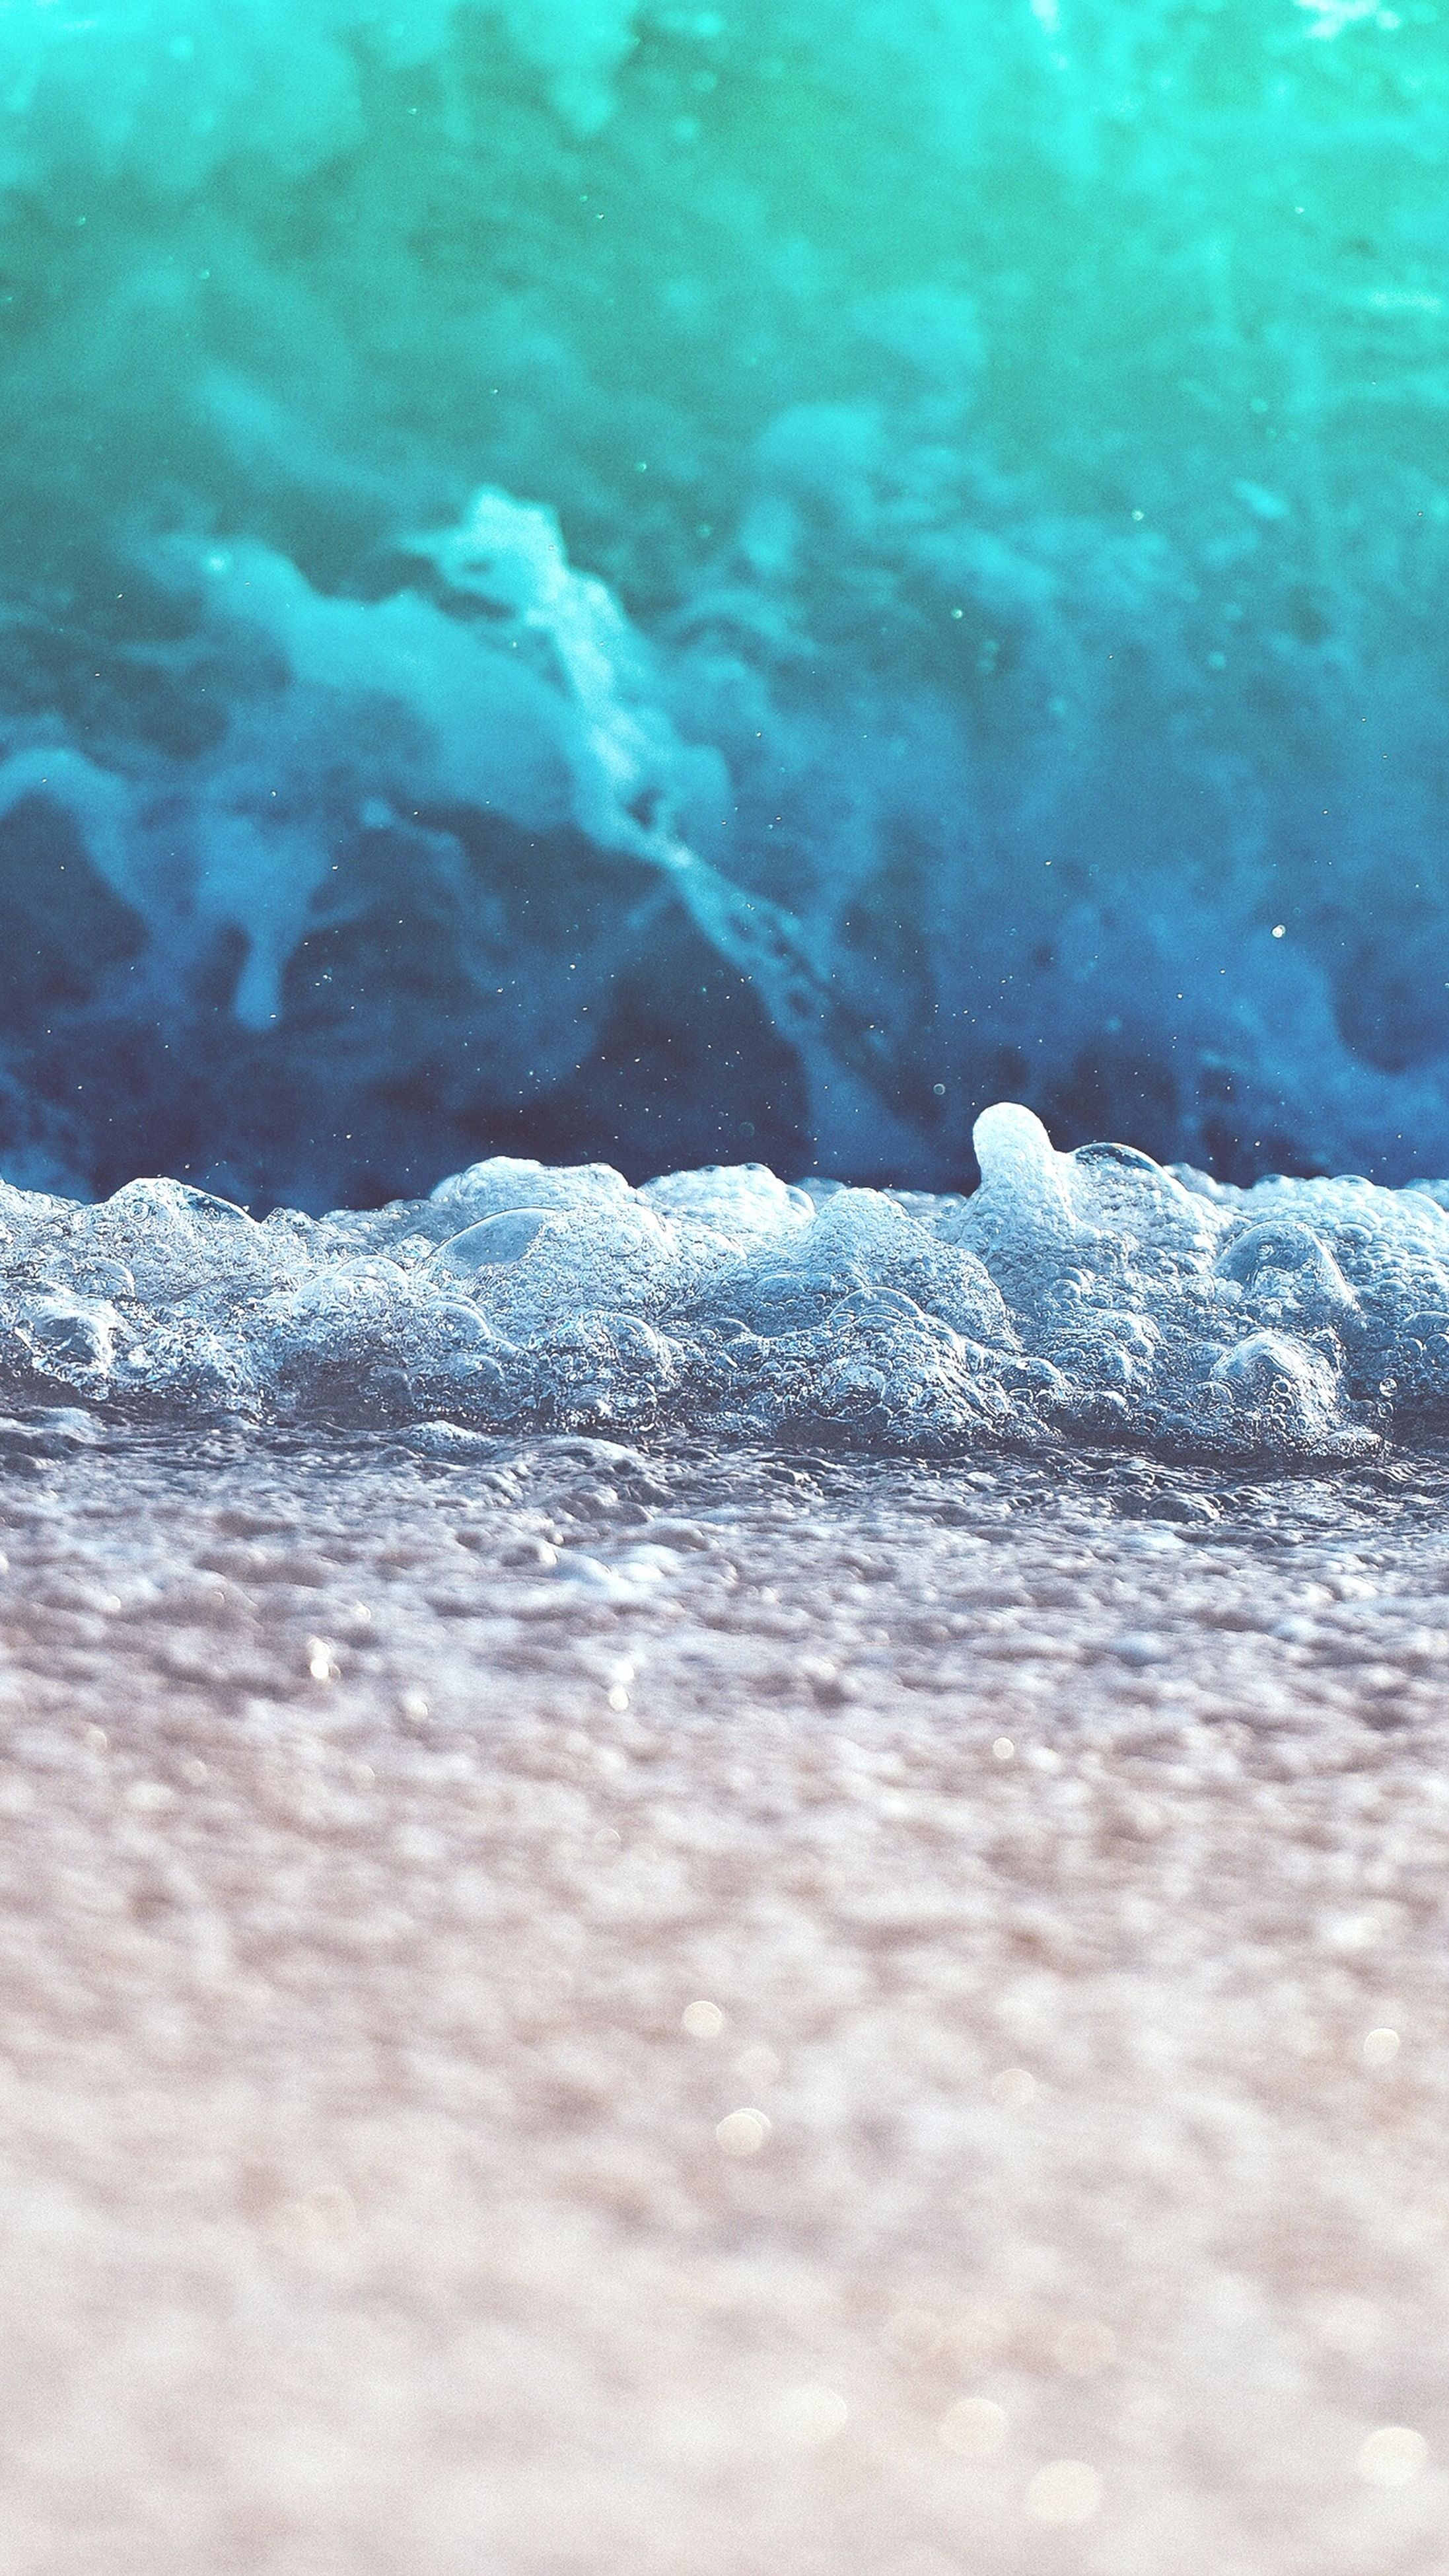 sand, nature, water, no people, beach, sky, outdoors, tranquility, day, beauty in nature, sea, scenics, cloud - sky, abstract, landscape, wave, backgrounds, close-up